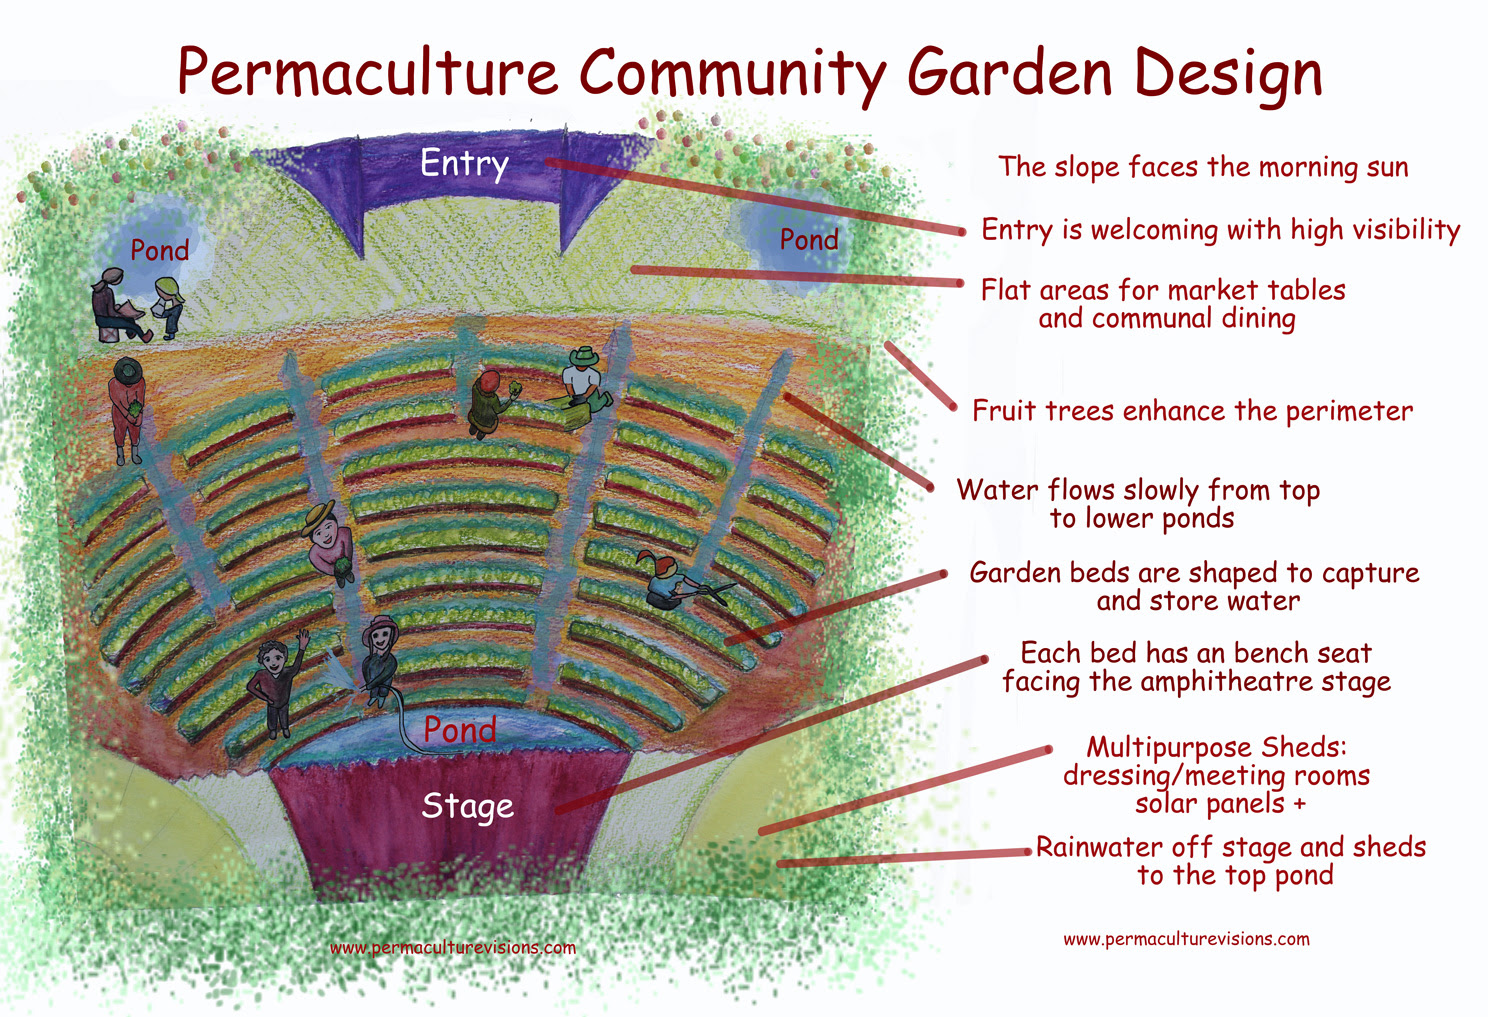 Permaculture design for community garden2